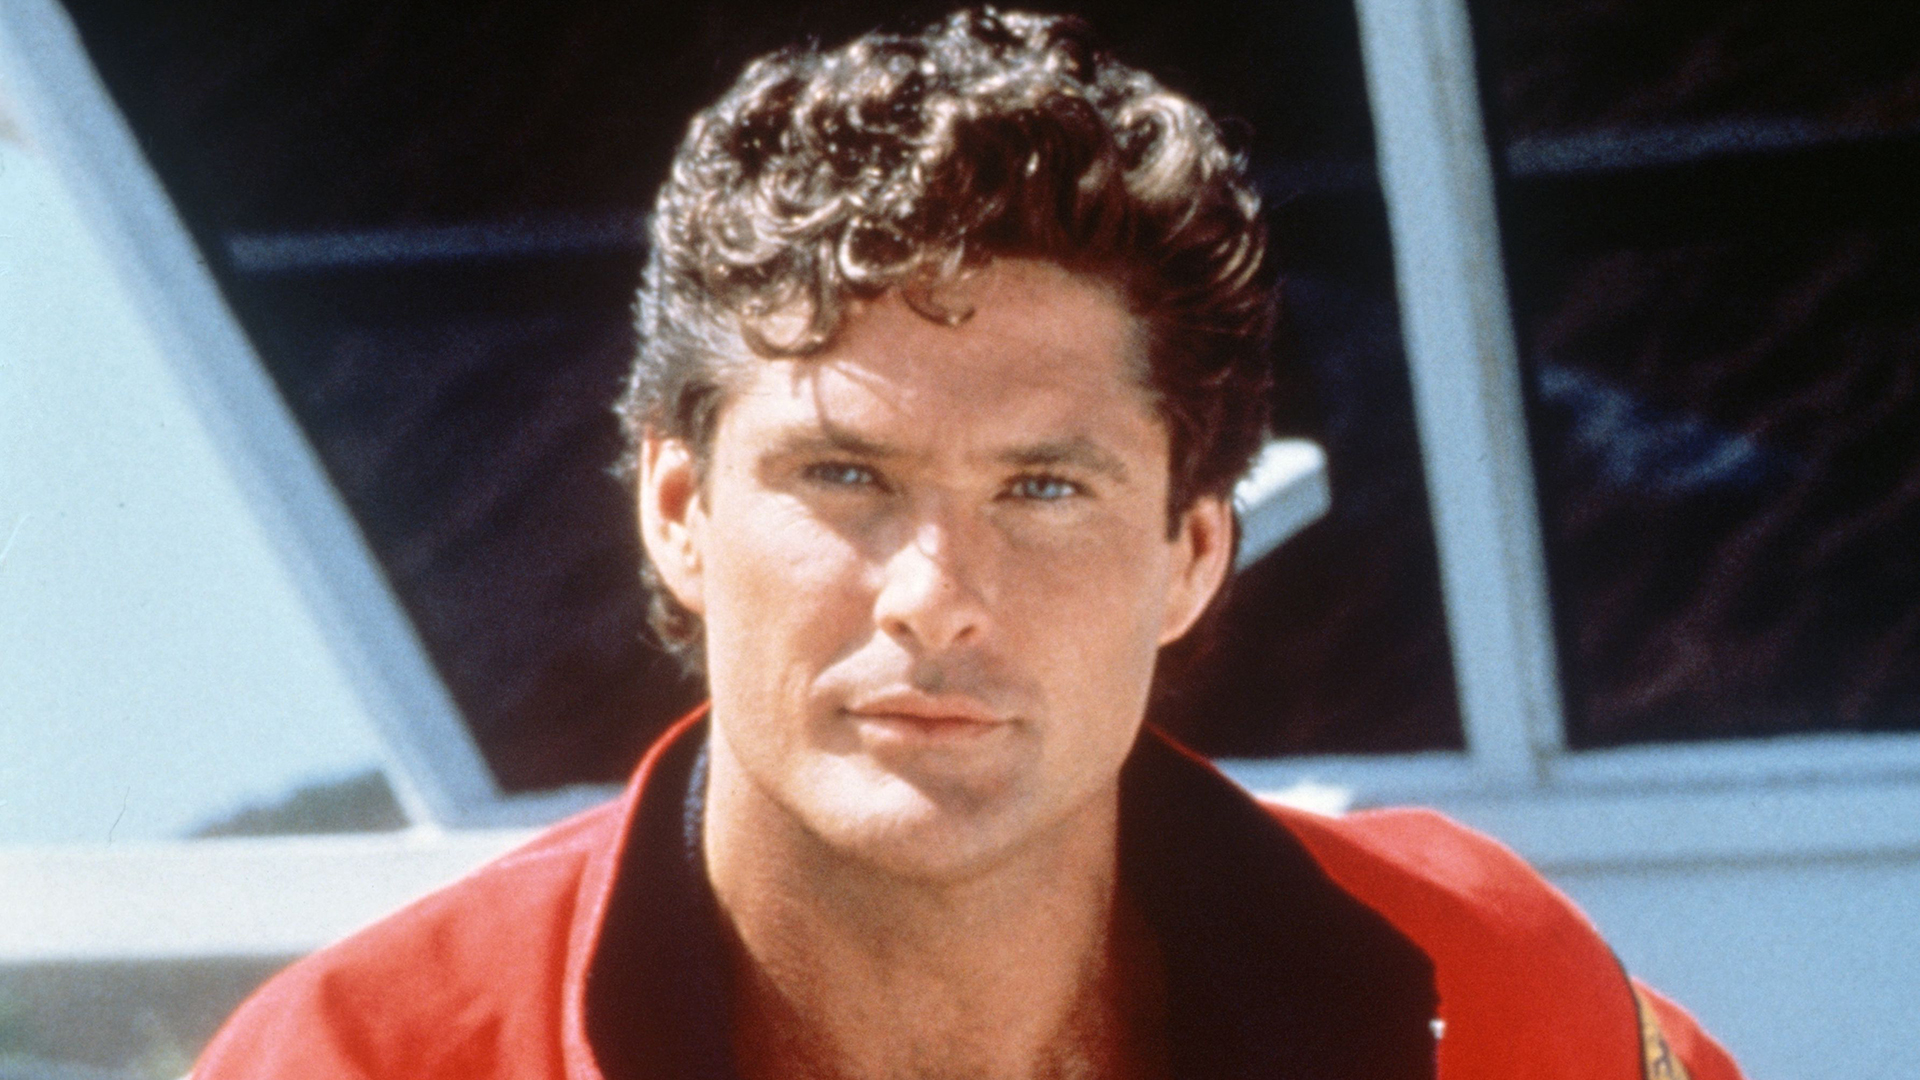 David charvet hairstyles for 2017 celebrity hairstyles by - David Hasselhoff Baywatch Tease 160303_9a484fa3b89ae657a2520419e0bbdf6f